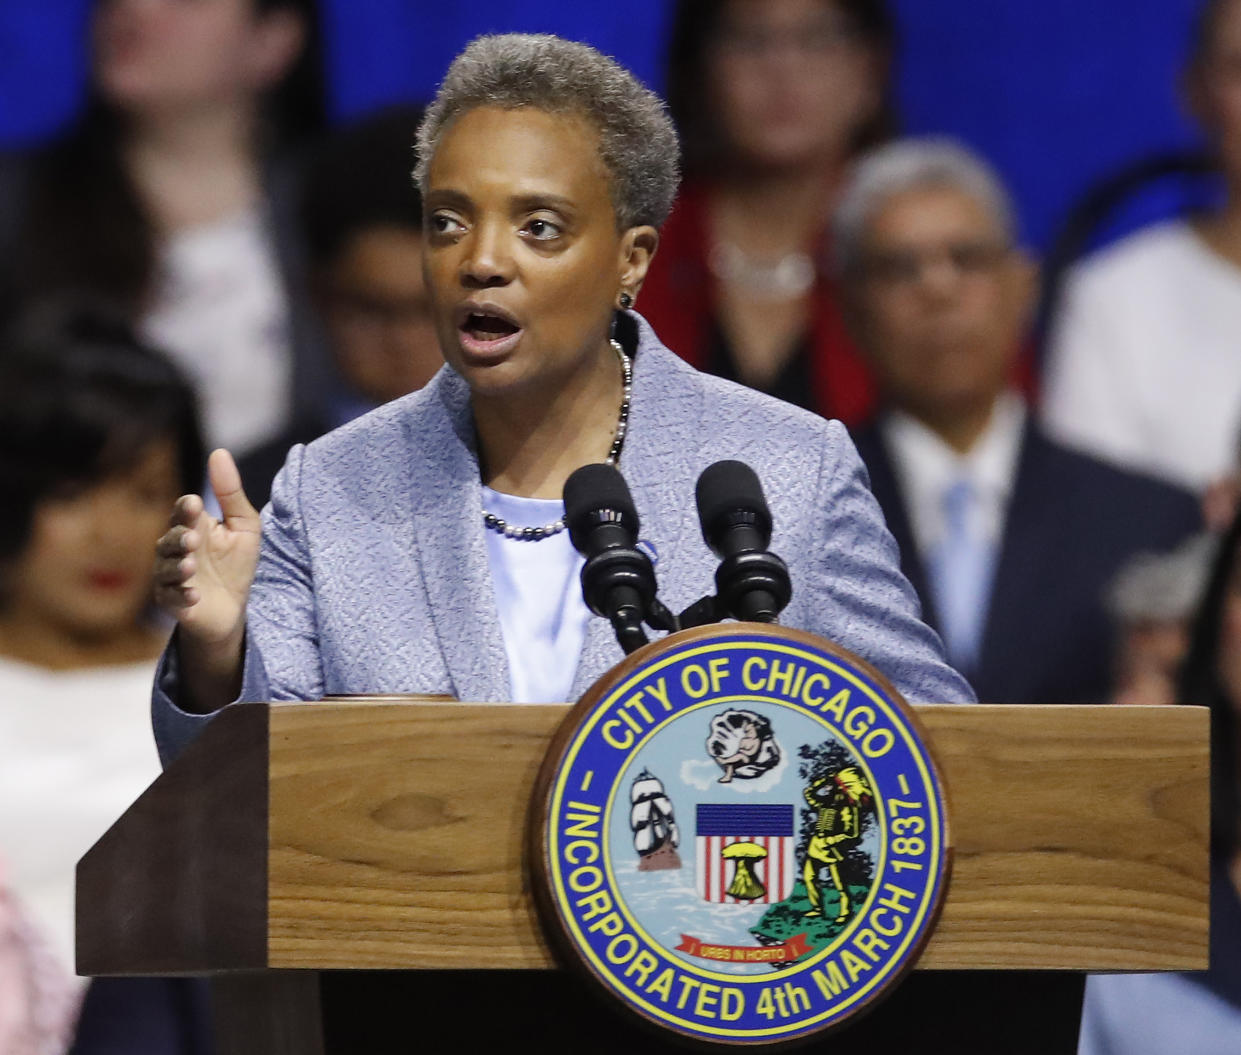 Chicago Mayor Lori Lightfoot. (Photo: Jim Young/AP)